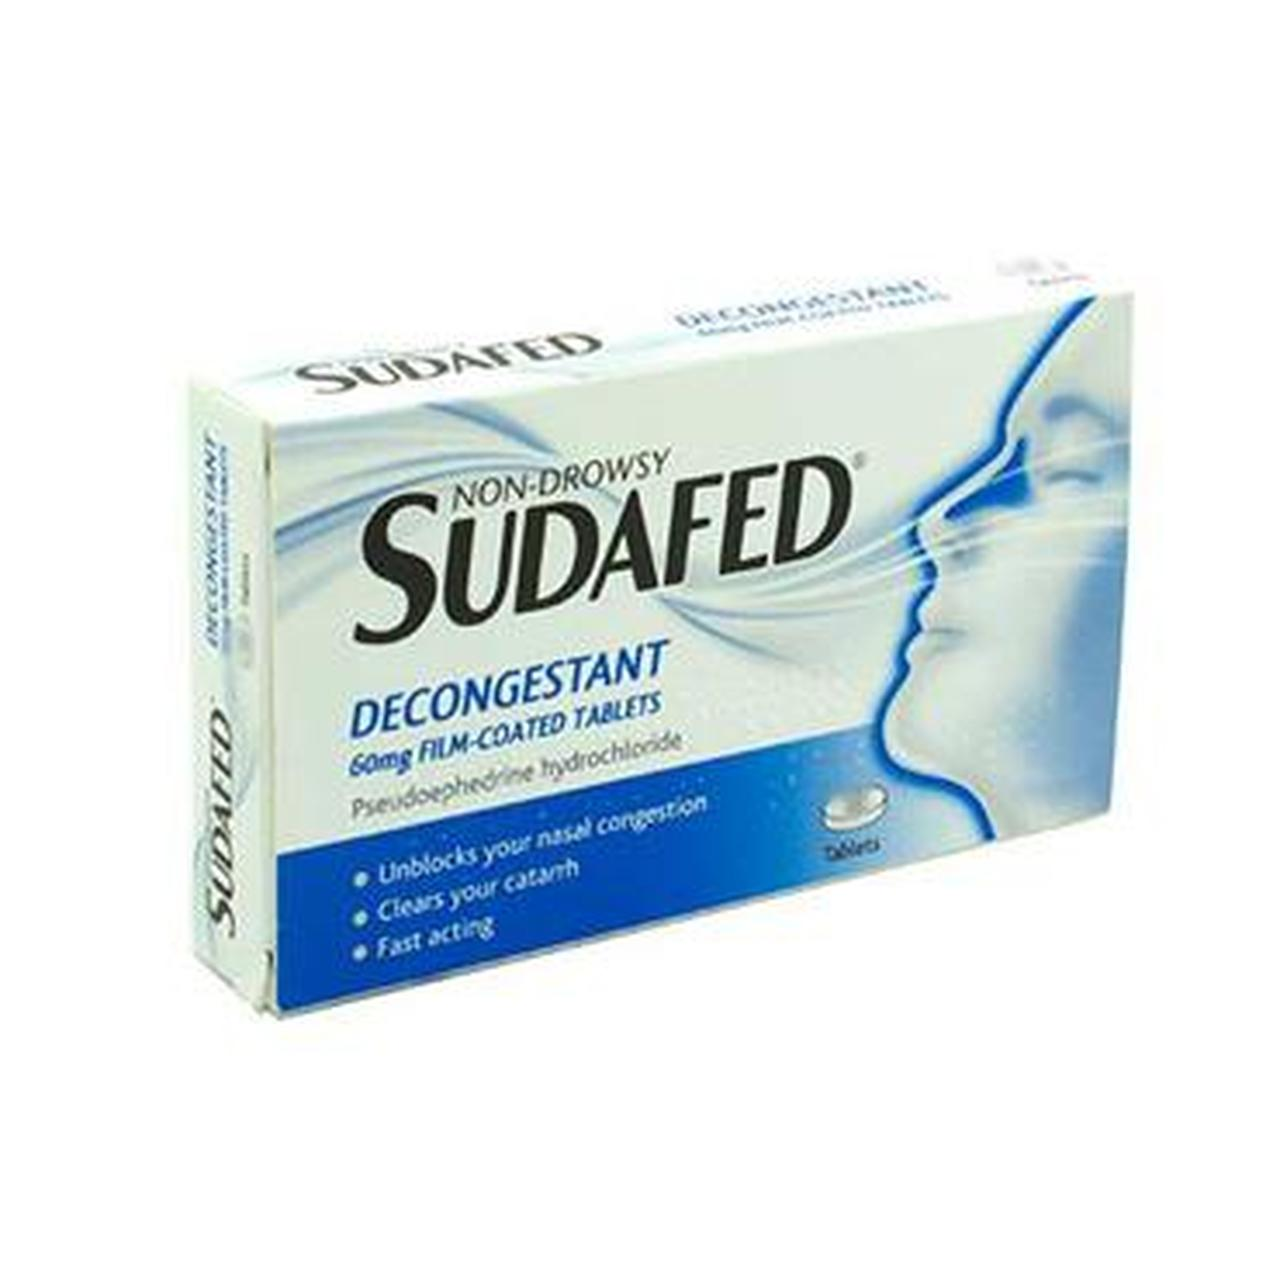 SUDAFED DECONGESTANT 60MG FILM COATED TABS PH ONLY (12's)